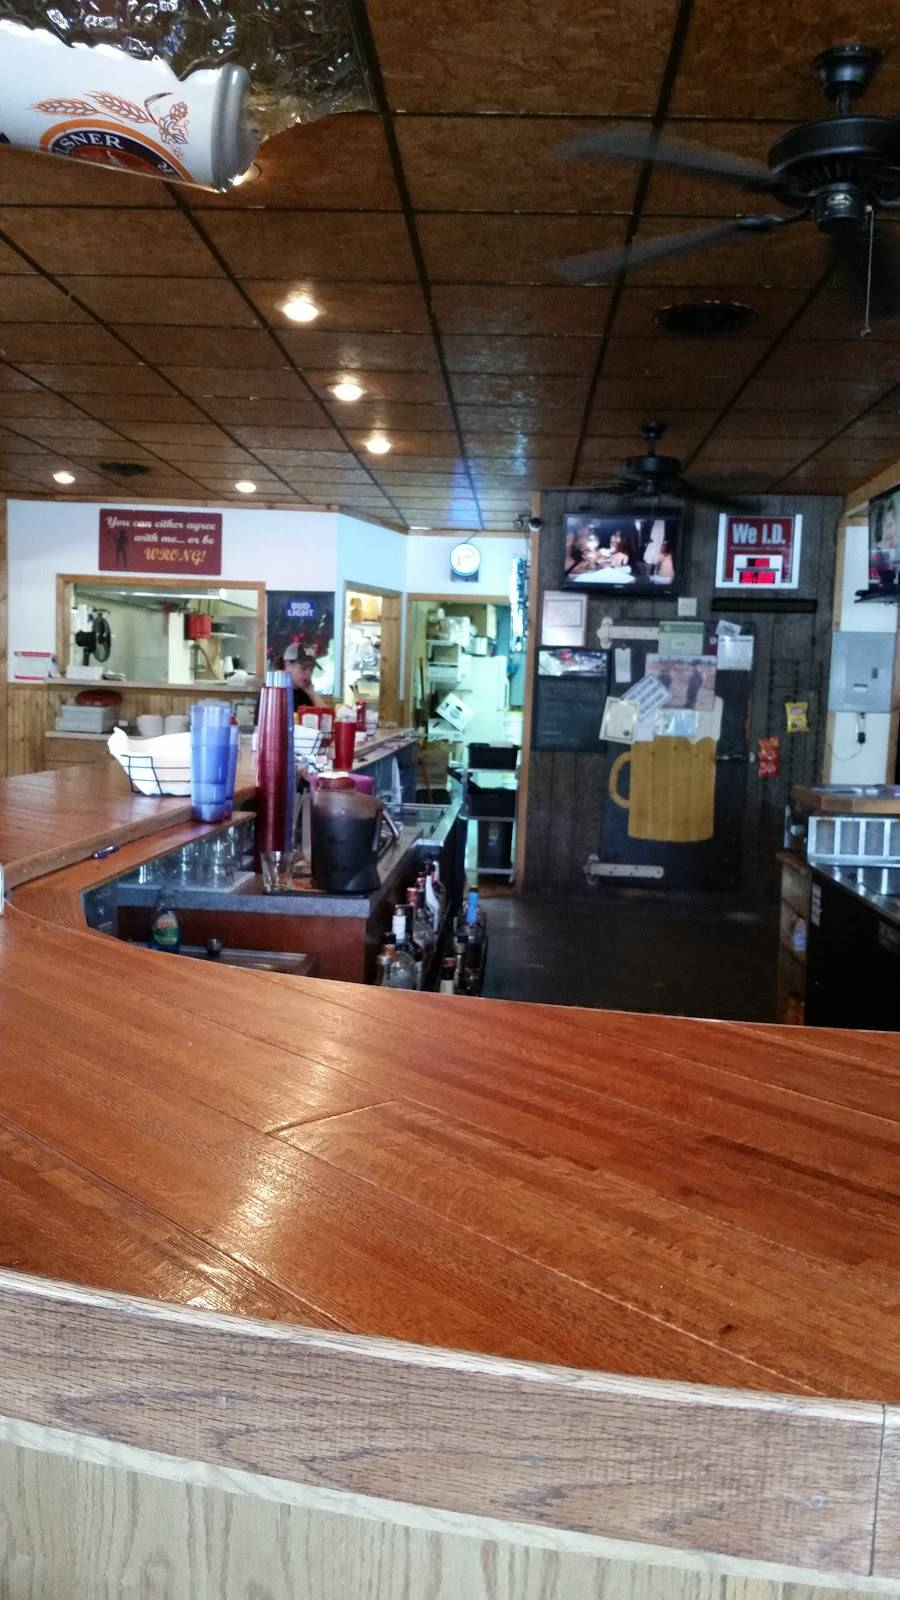 Genisios   restaurant   249 N Division St, Woodhull, IL 61490, USA   3093342665 OR +1 309-334-2665